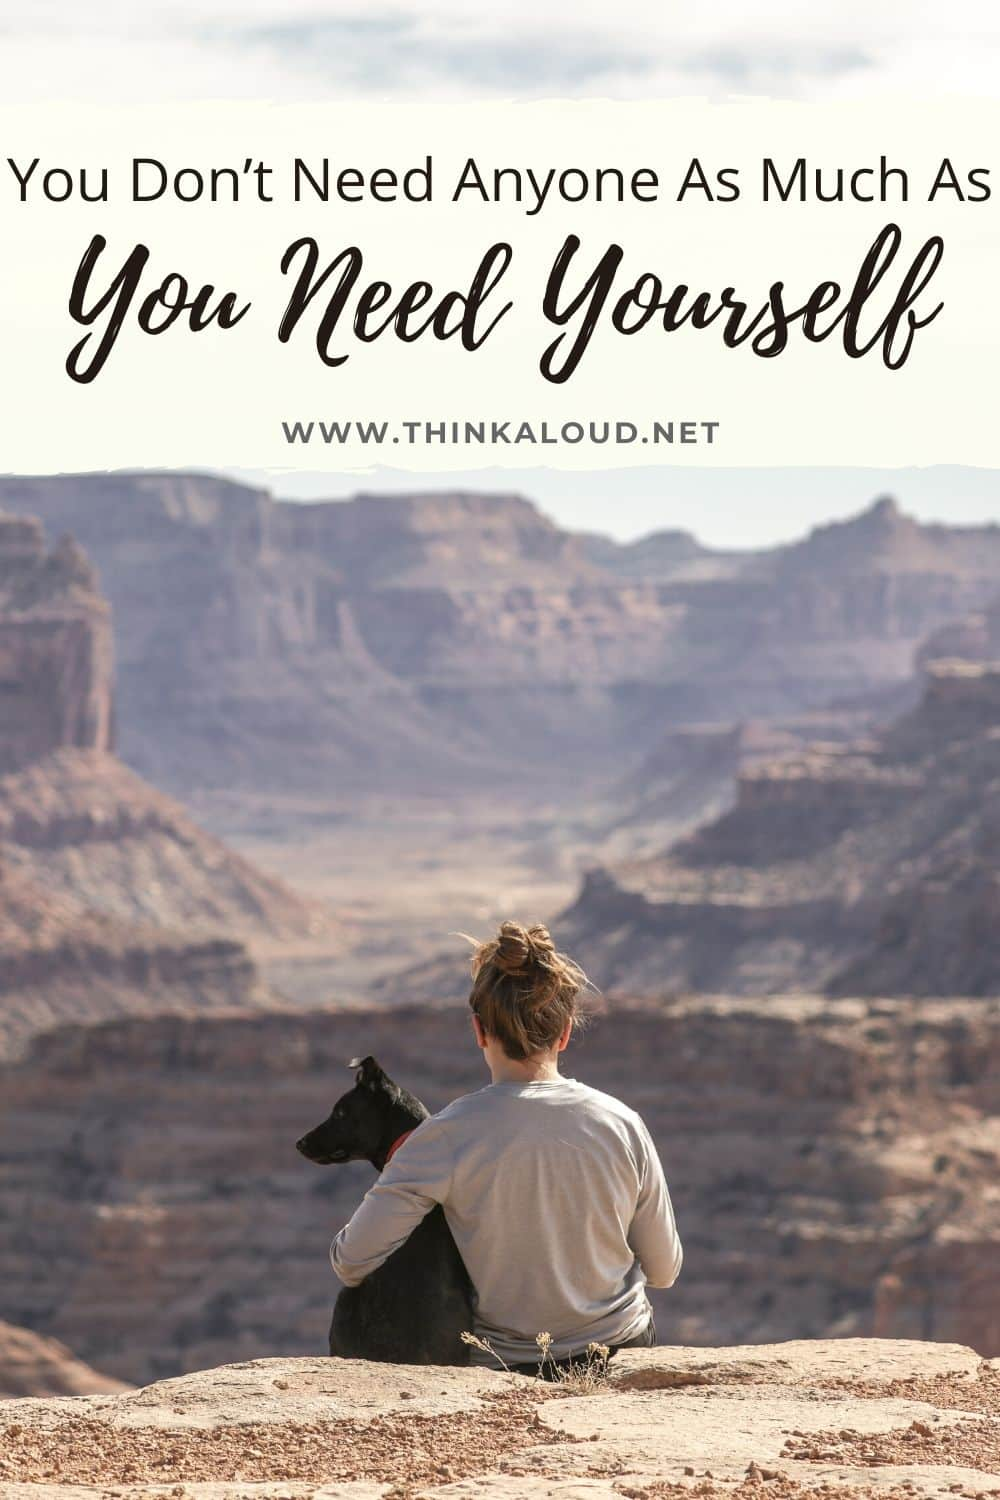 You Don't Need Anyone As Much As You Need Yourself